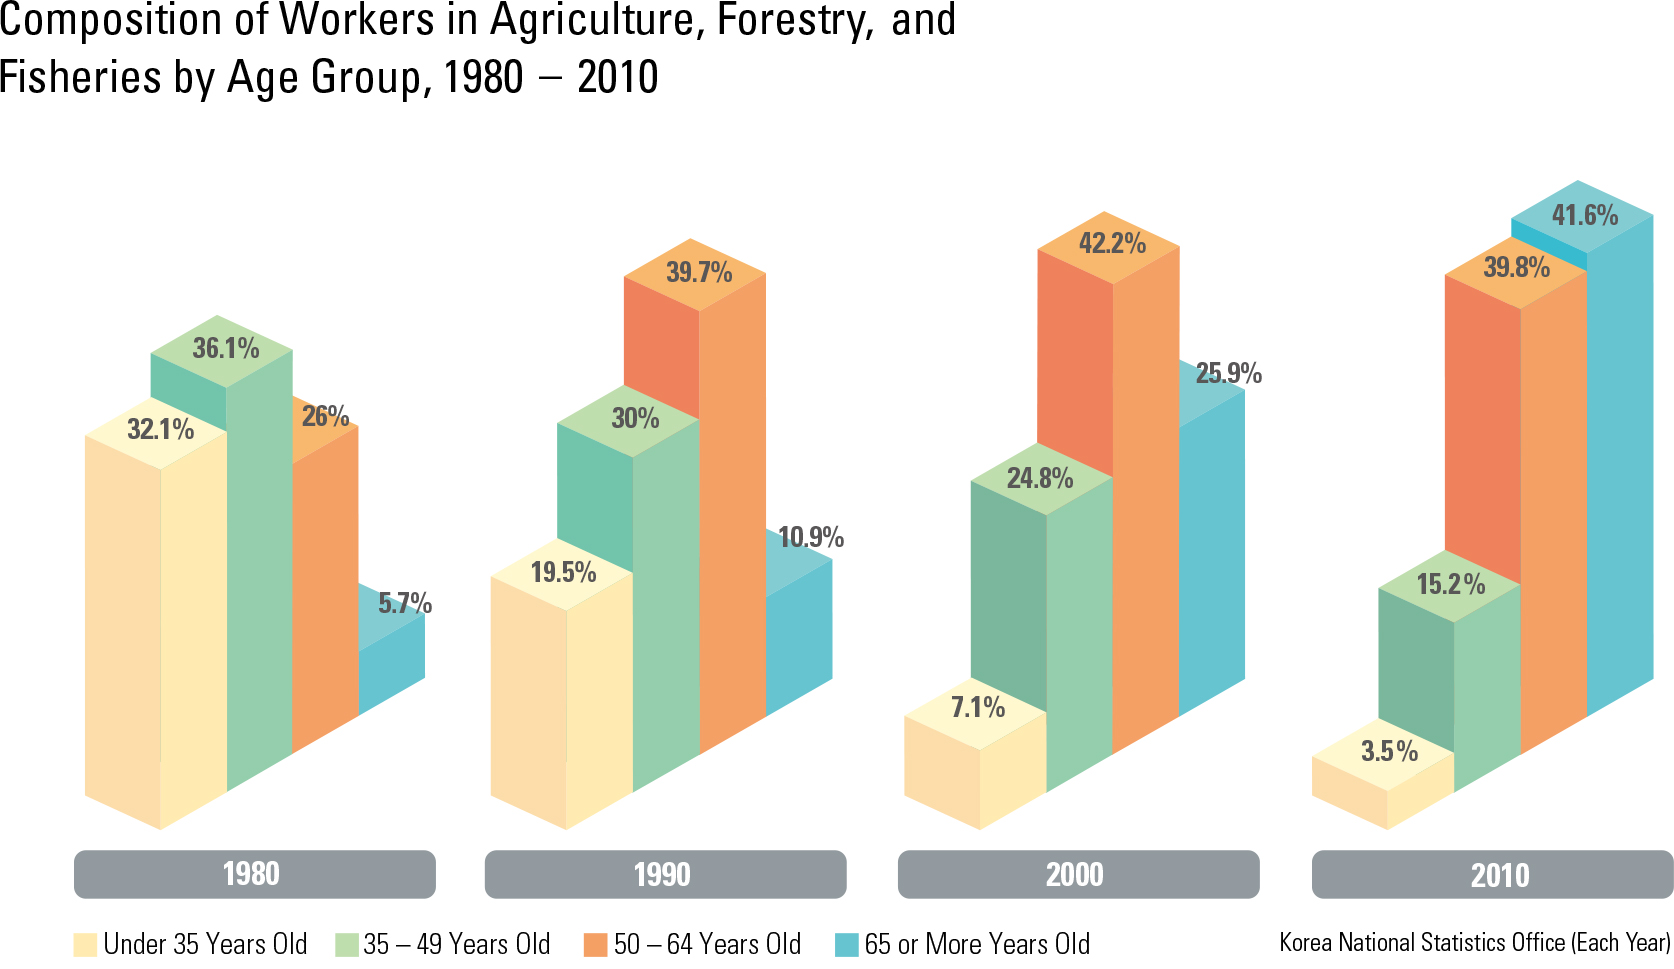 Composition of Workers in Agriculture, Forestry, and Fisheries by Age Group, 1980 – 2010